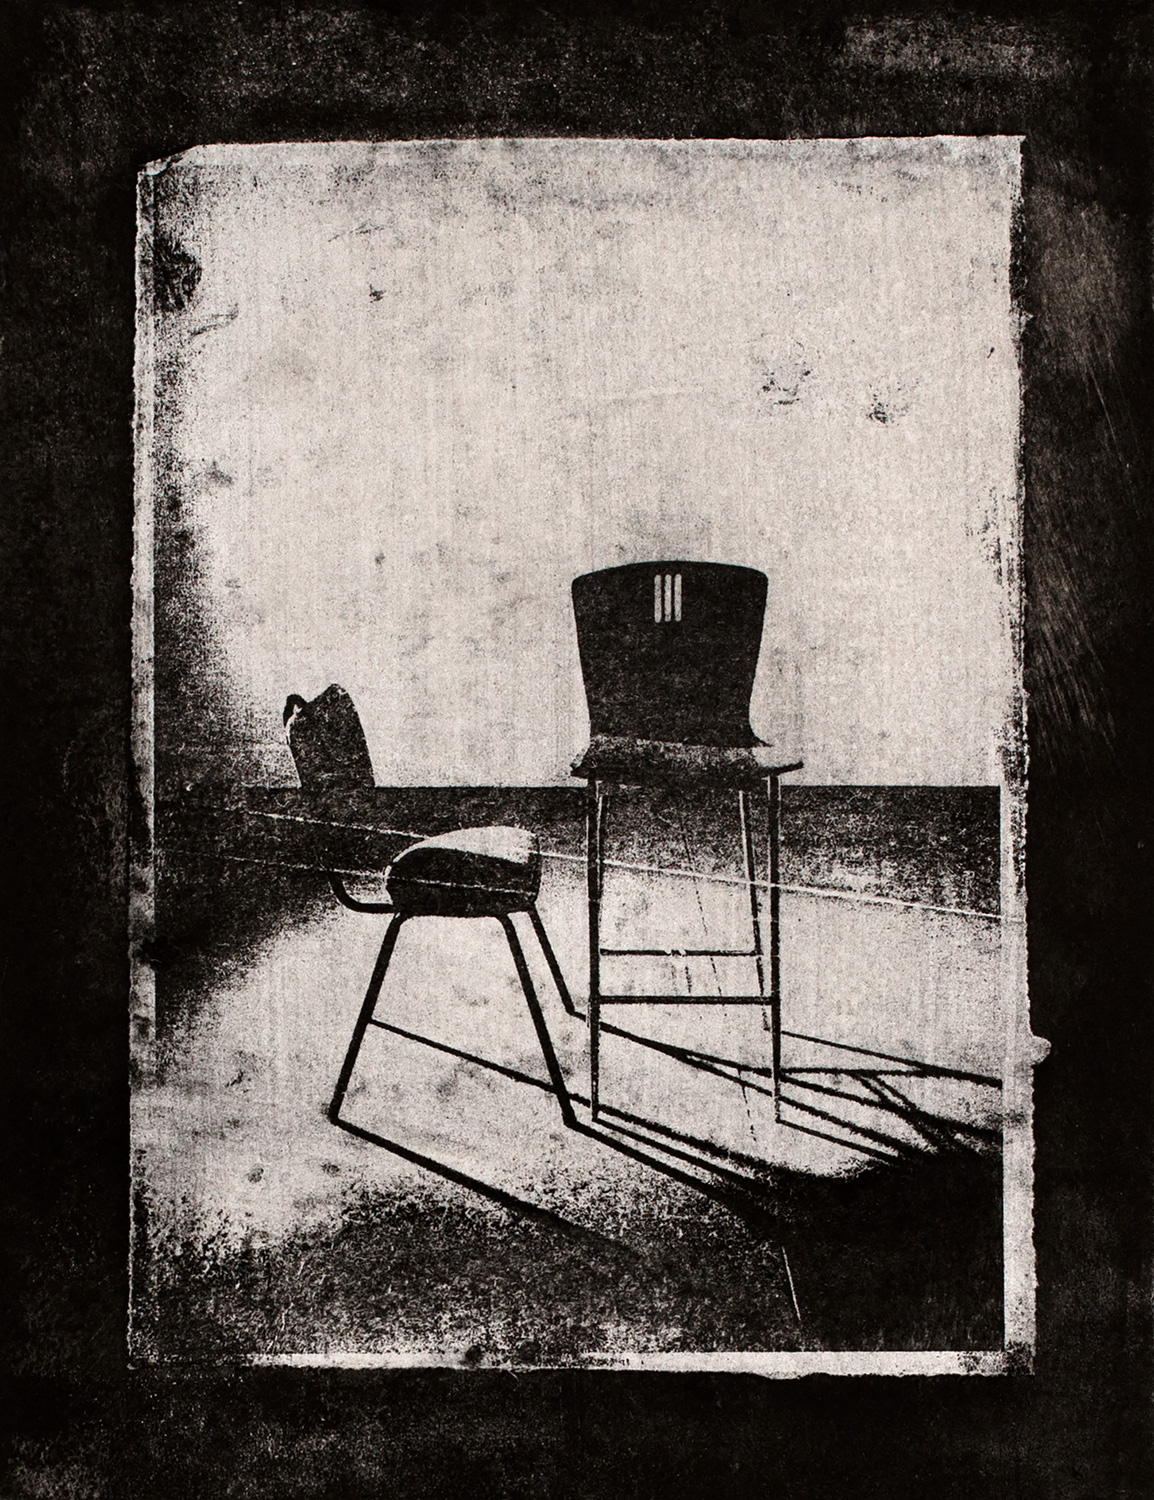 Chairs III , 2016, paper lithograph on Fabriano Artistico 300 gsm, 42 x 29.7 cm